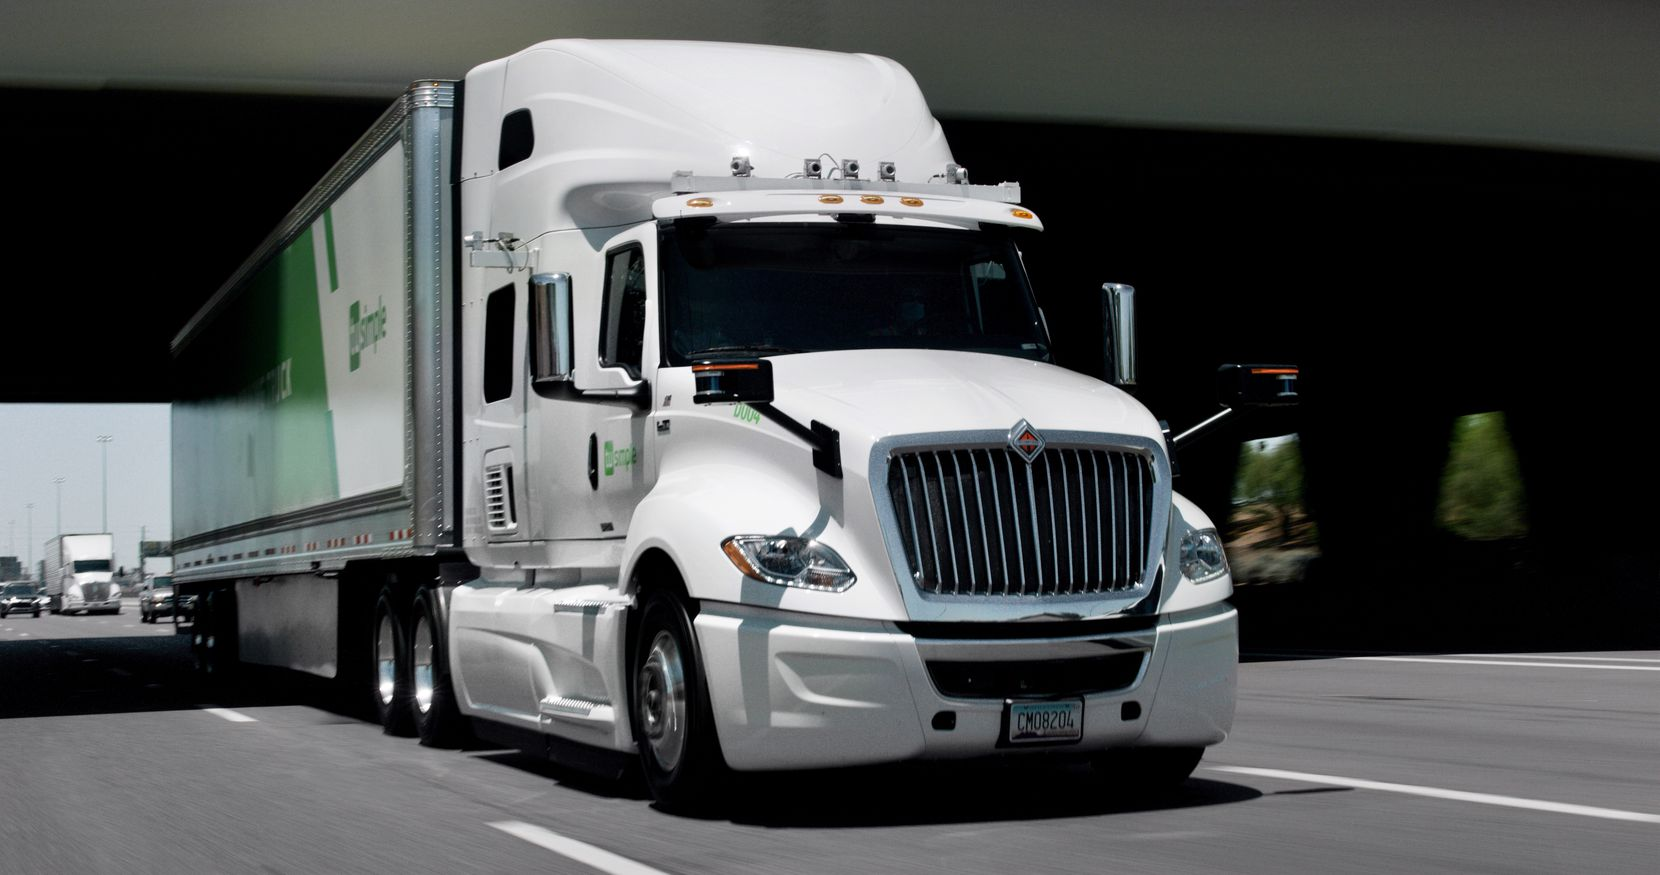 TuSimple's autonomous trucks are equipped with HD cameras, radar and other sensors to inform the artificial intelligence that maneuvers the vehicles.